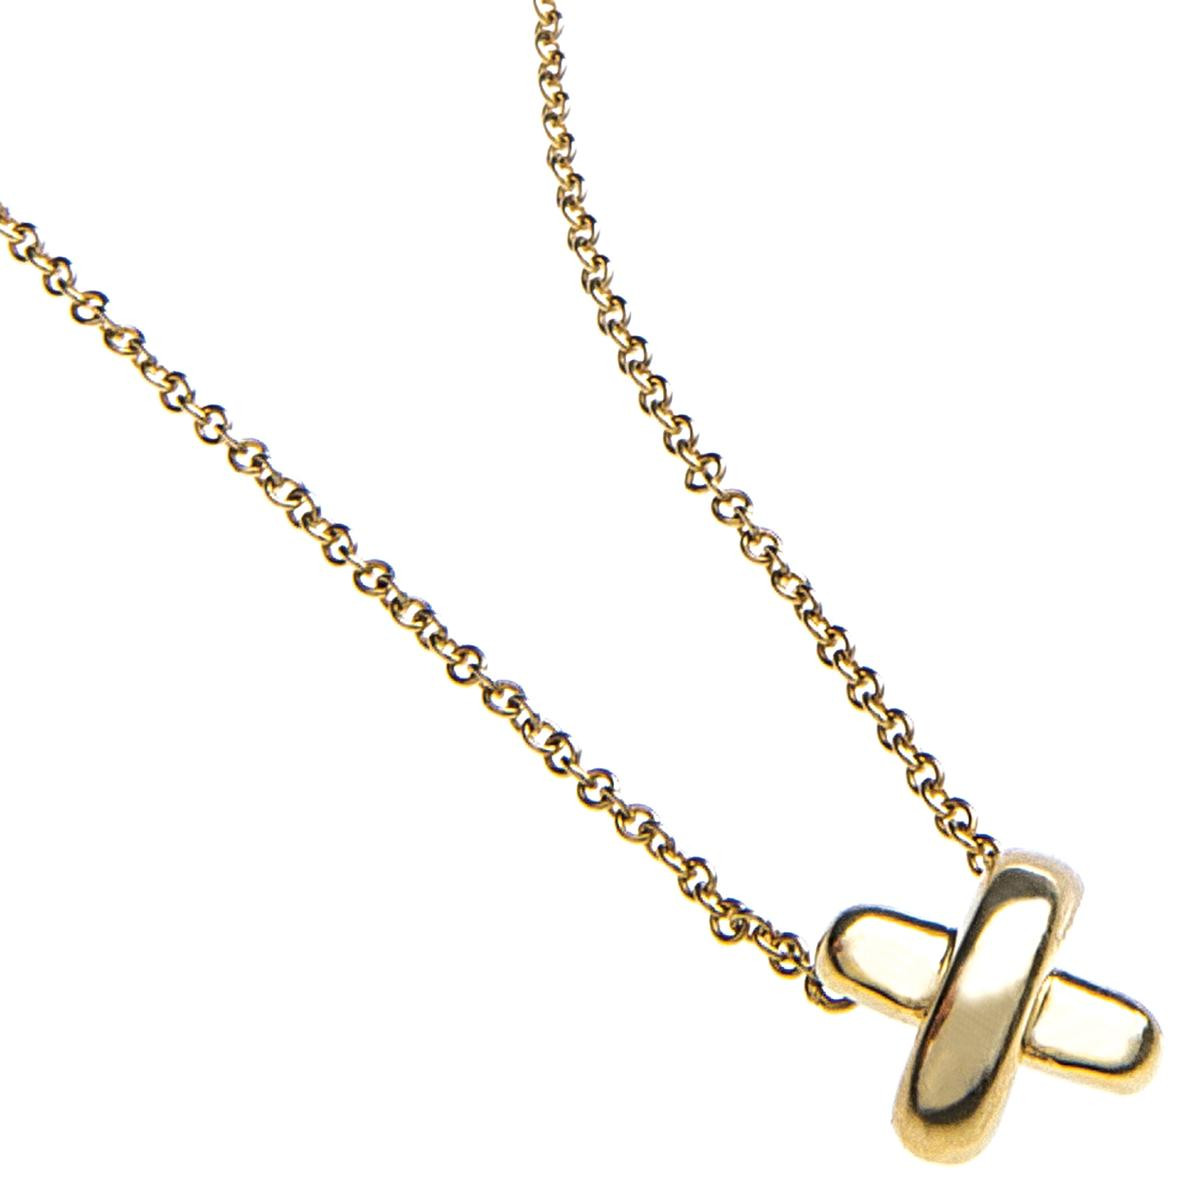 Vintage Tiffany & Co. Mini Signature X Pendant